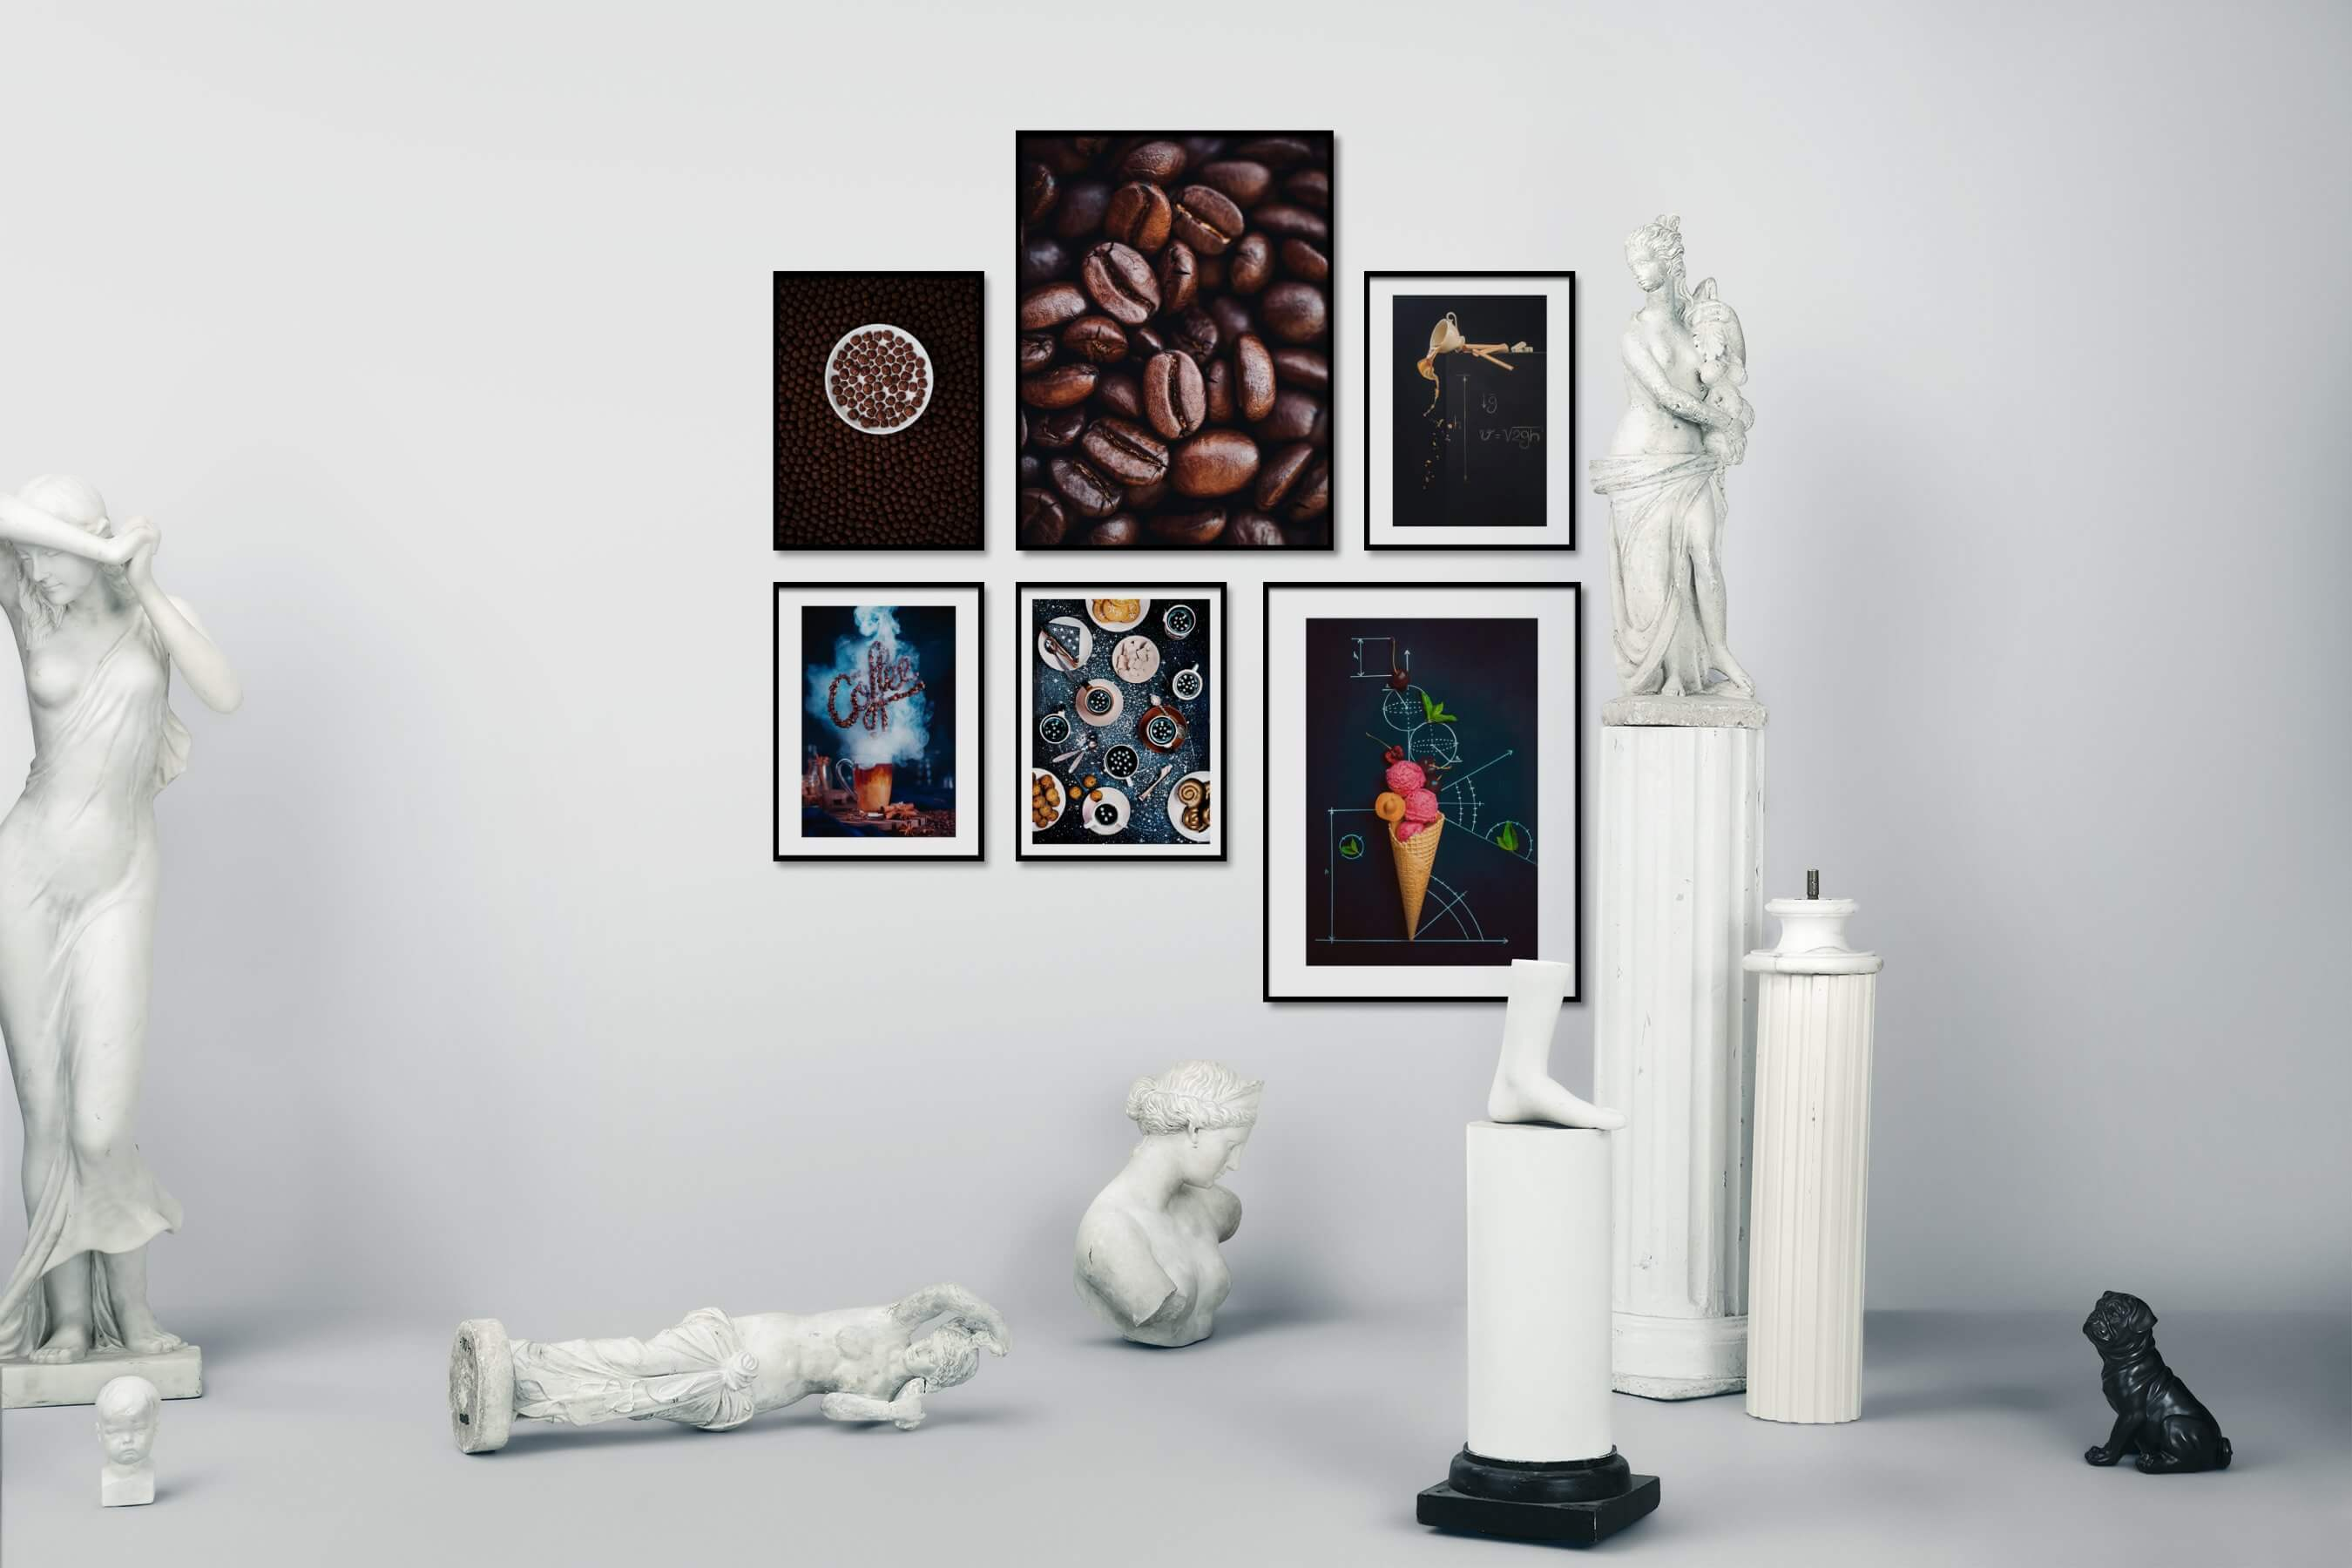 Gallery wall idea with six framed pictures arranged on a wall depicting For the Minimalist, For the Moderate, and Mindfulness